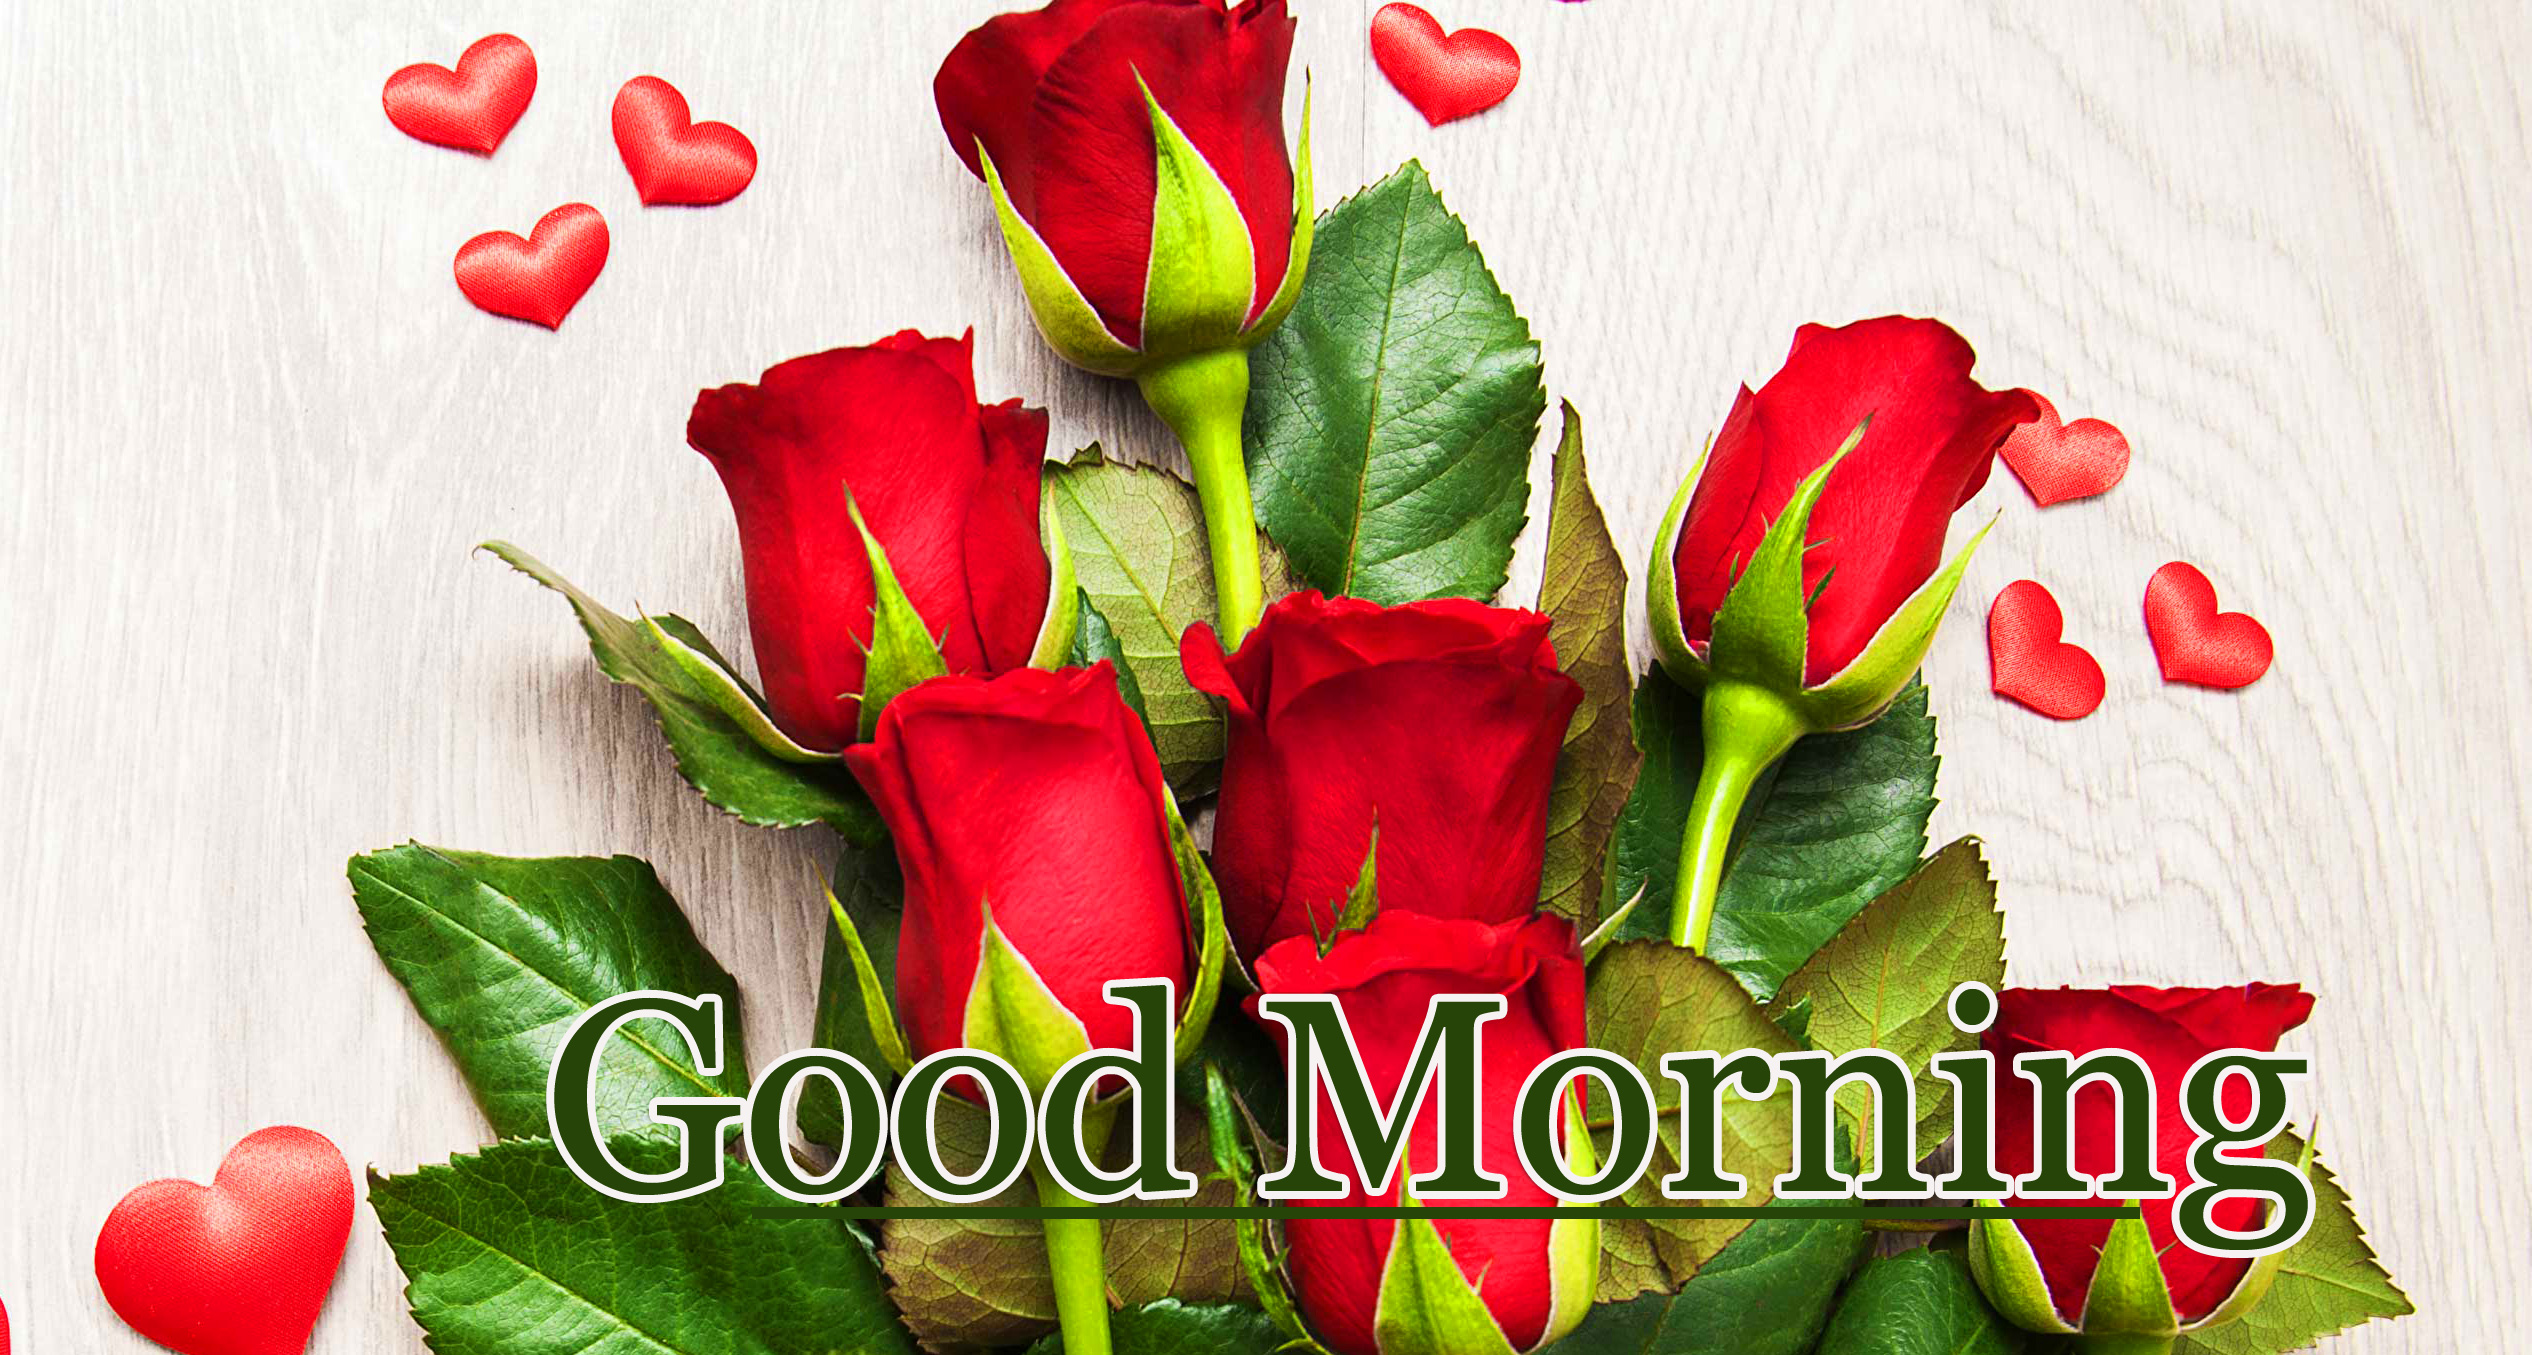 Good Morning Wallpaper Pictures Free for Facebook